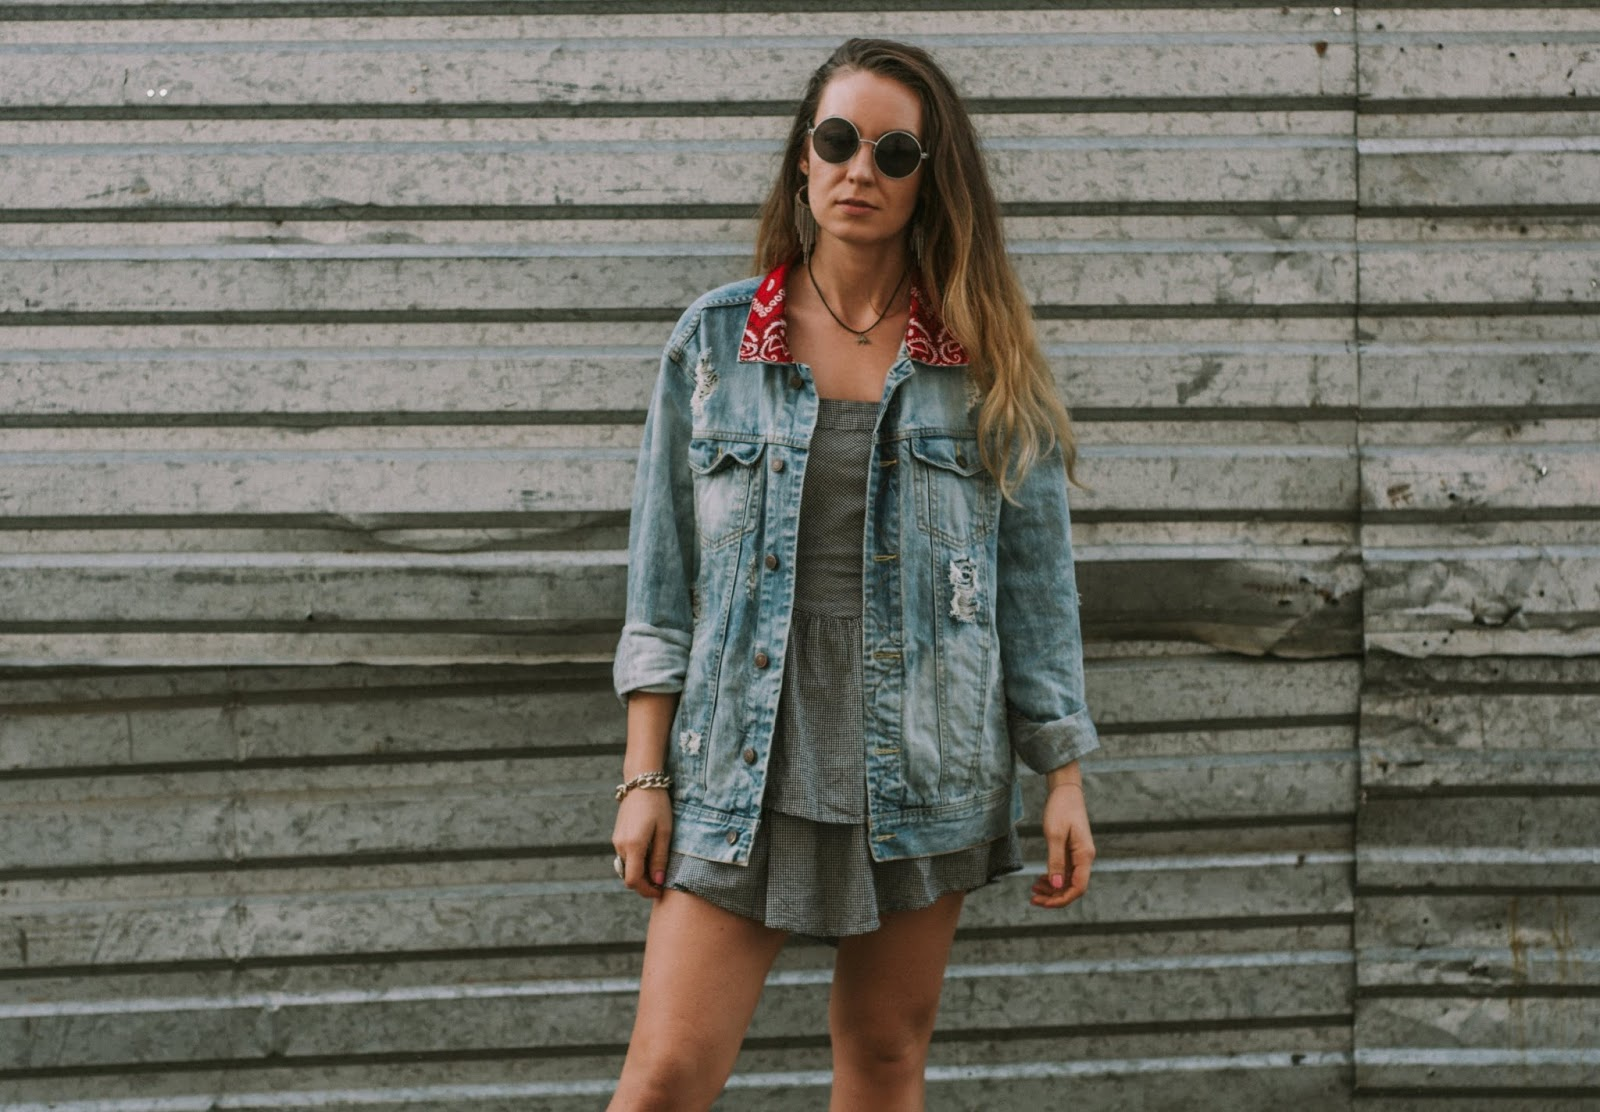 street outfit with denim jacket